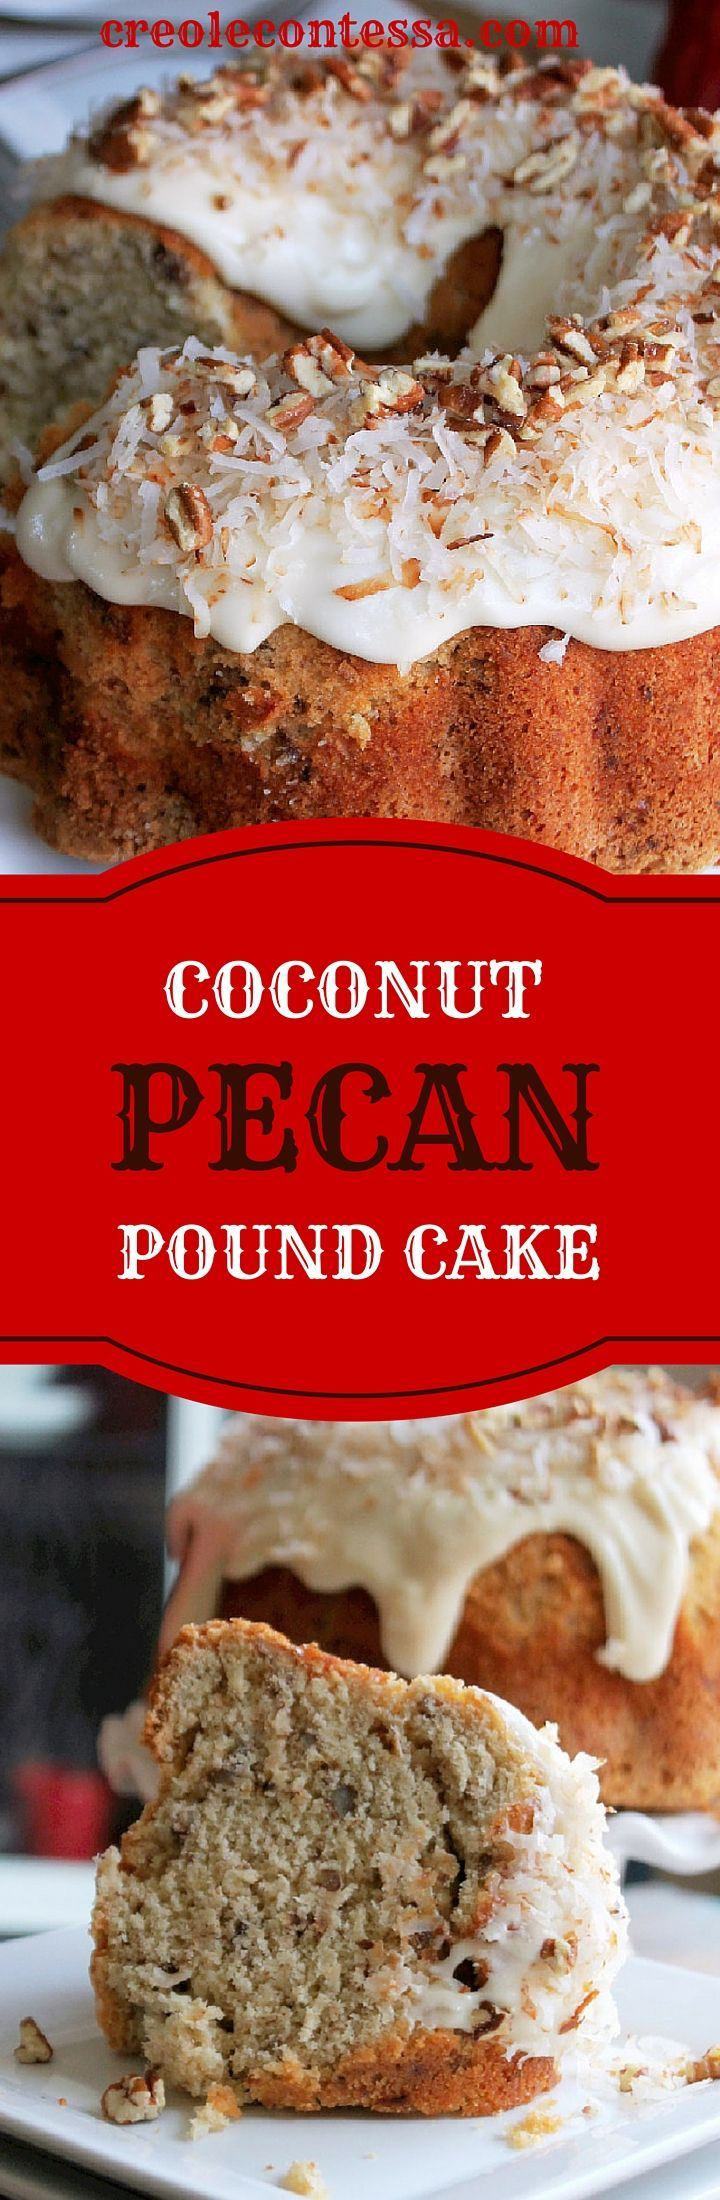 Coconut Pecan Pound Cake with Coconut Cream Cheese-Creole Contessa